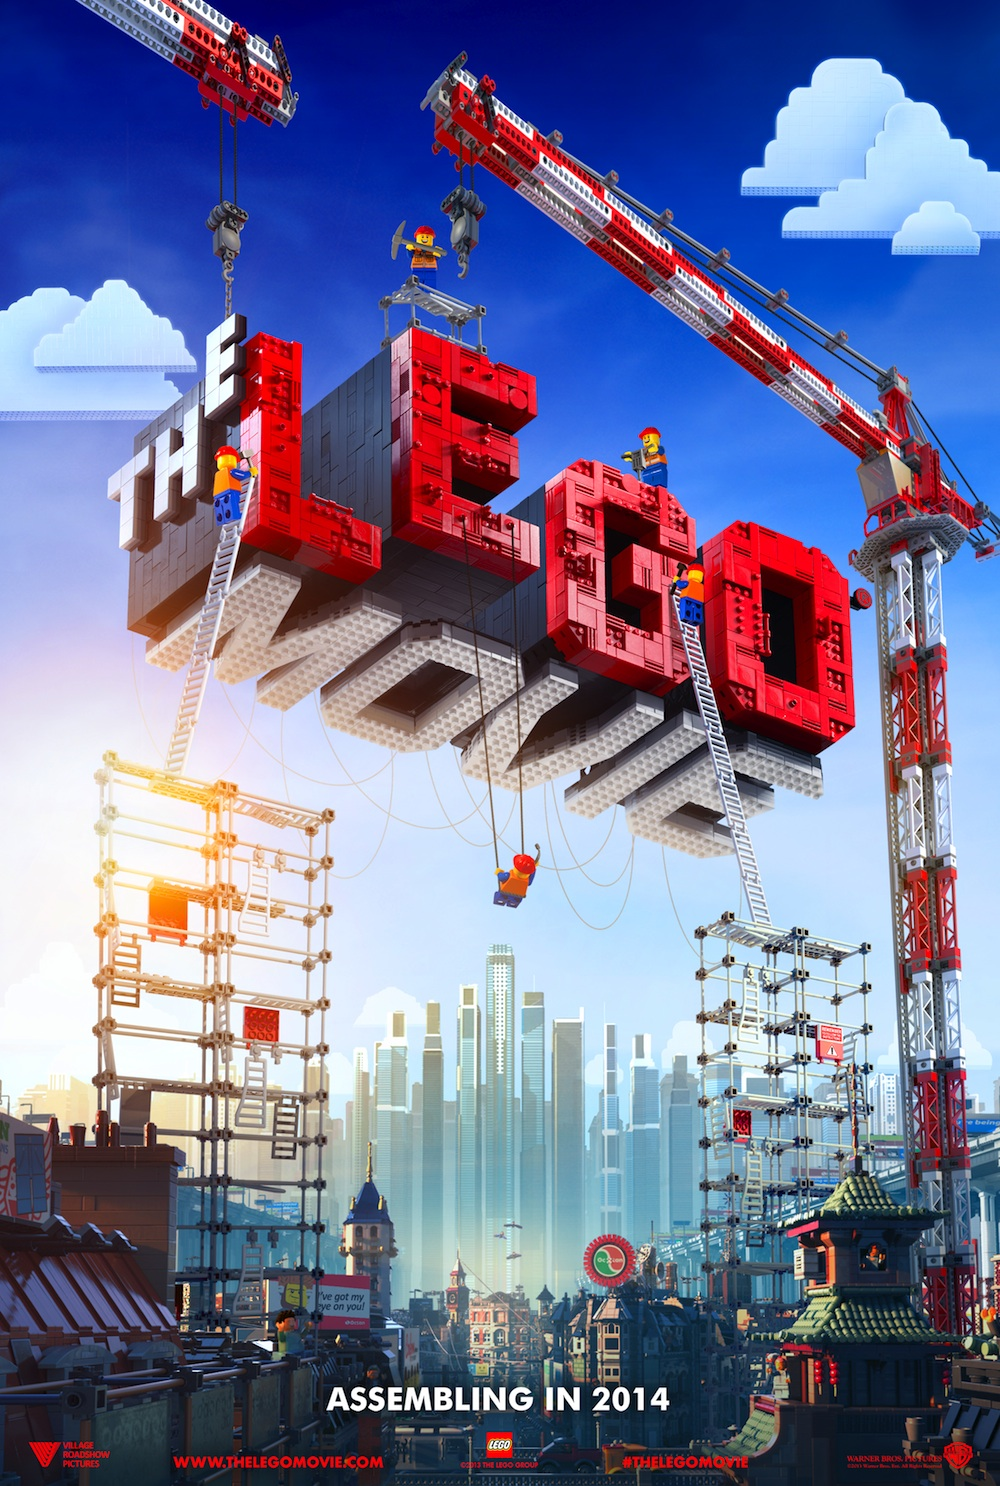 http://collider.com/wp-content/uploads/the-lego-movie-poster.jpg